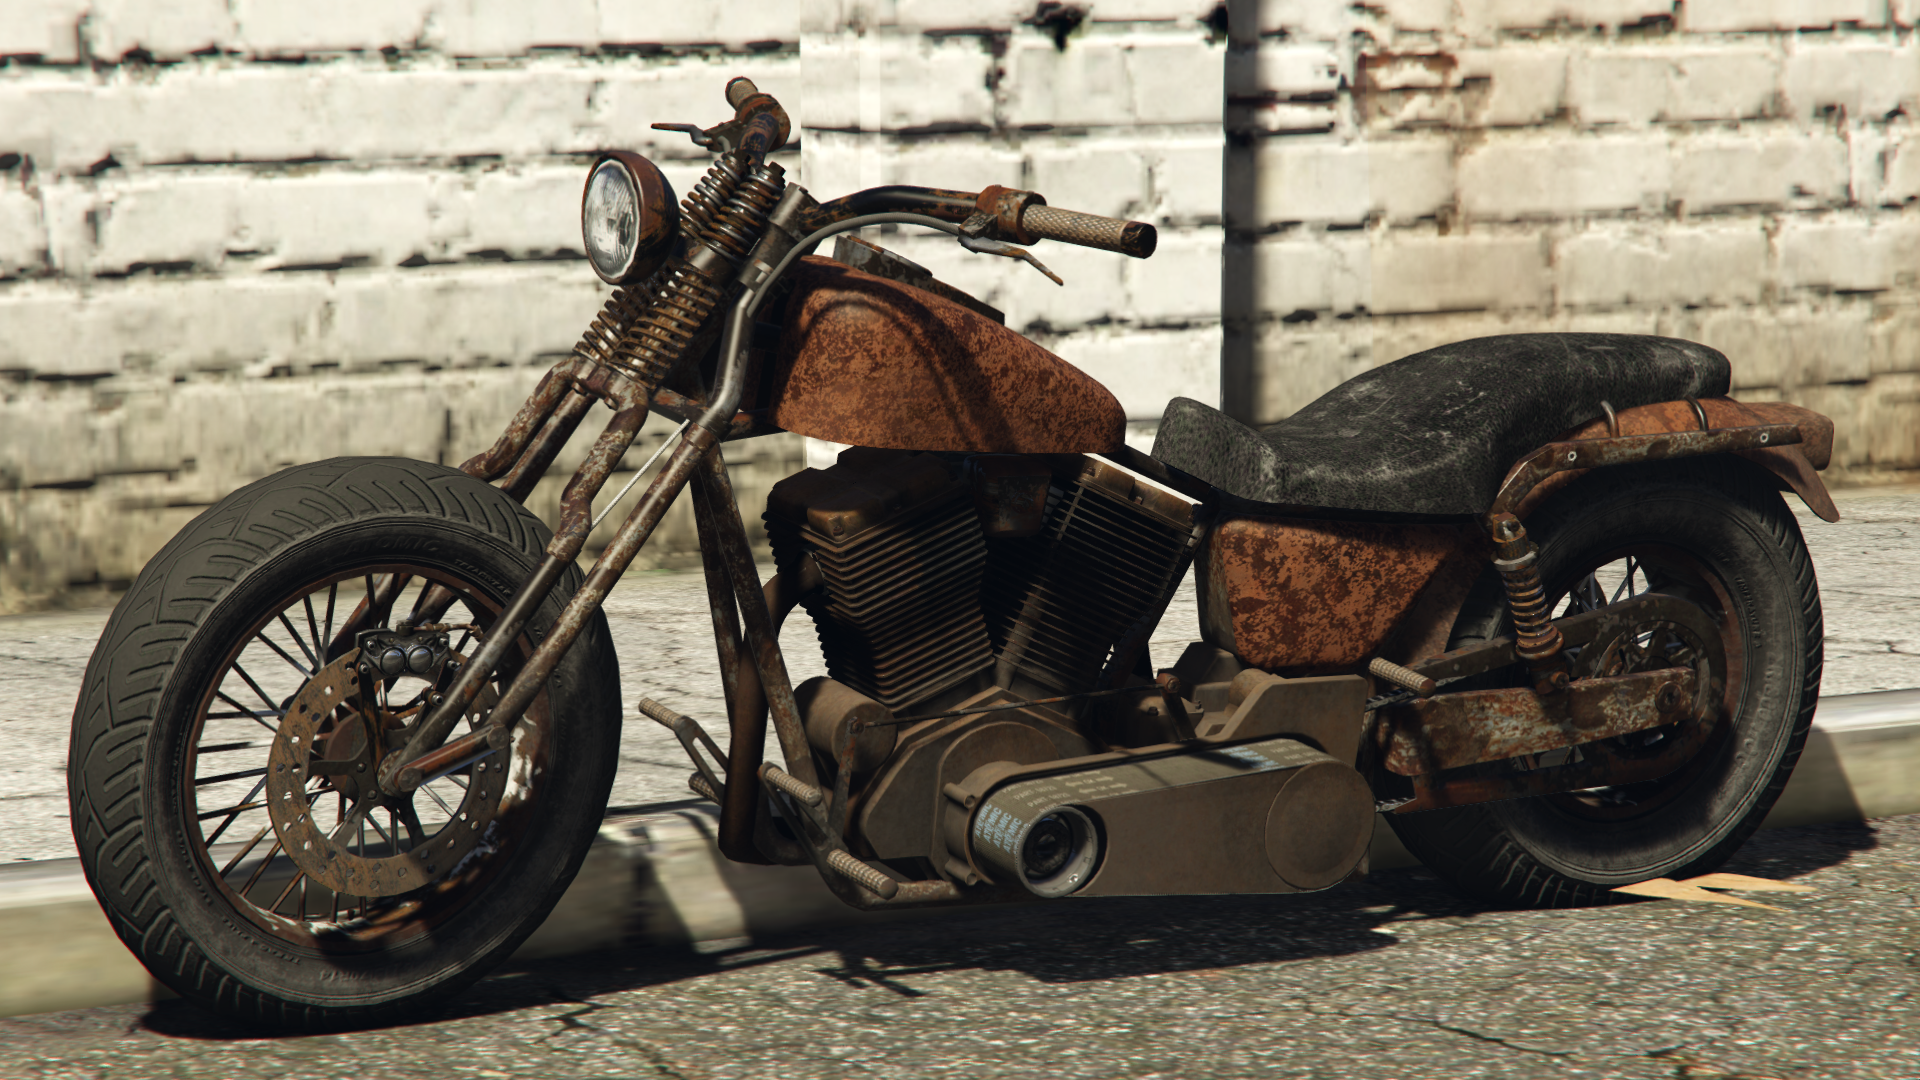 Rat Bike Gta Wiki Fandom Powered By Wikia